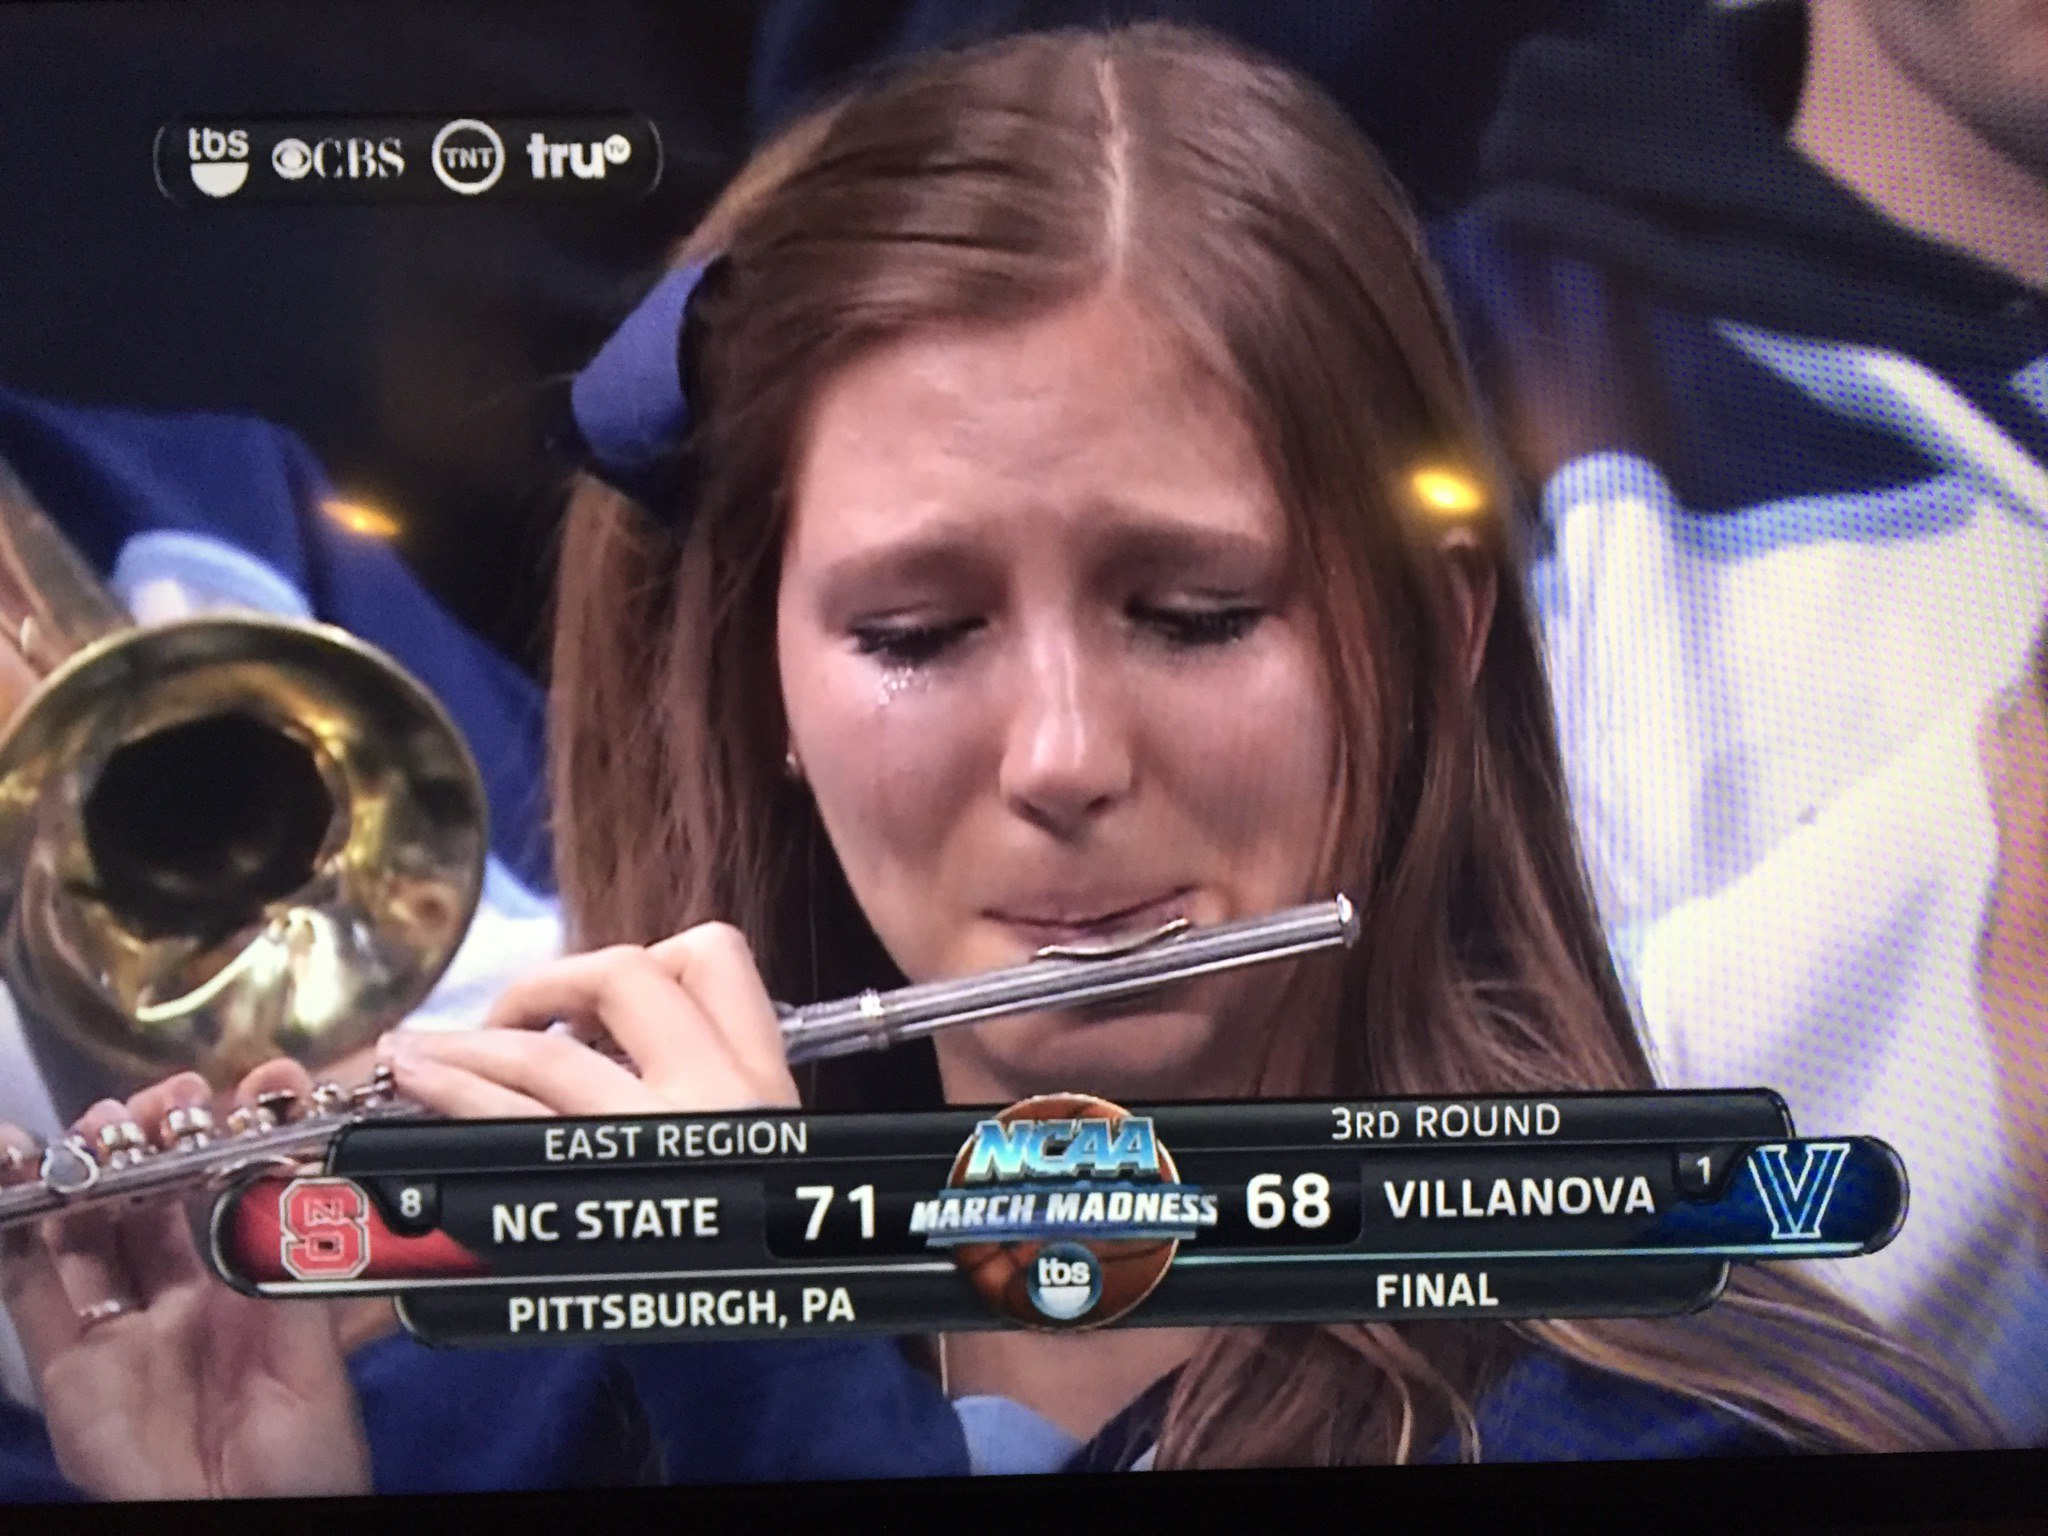 NCAA Basketball March Madness has become March Sadness for this Villanova band member.